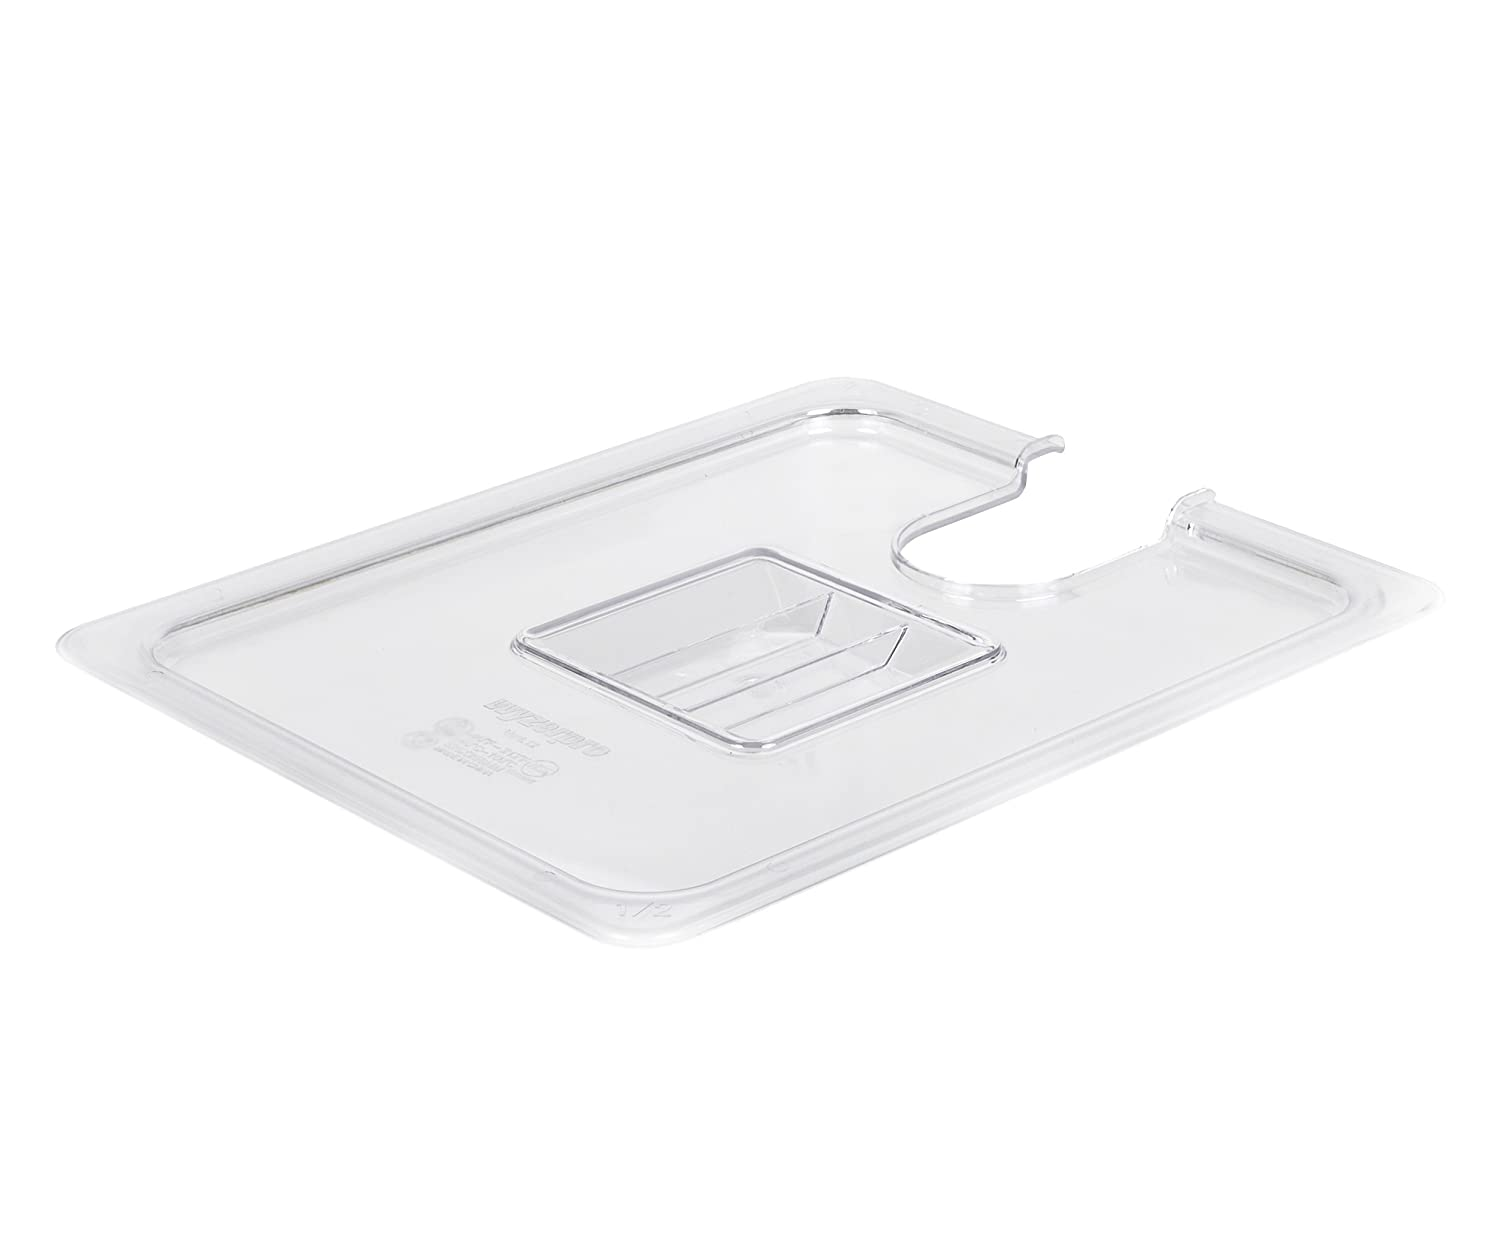 WyzerPro Sous Vide Container Lid WPC12 – Cutout for Anova Precision Immersion Circulator – Prevent Vaporization for Consistent Cooking Water Bath